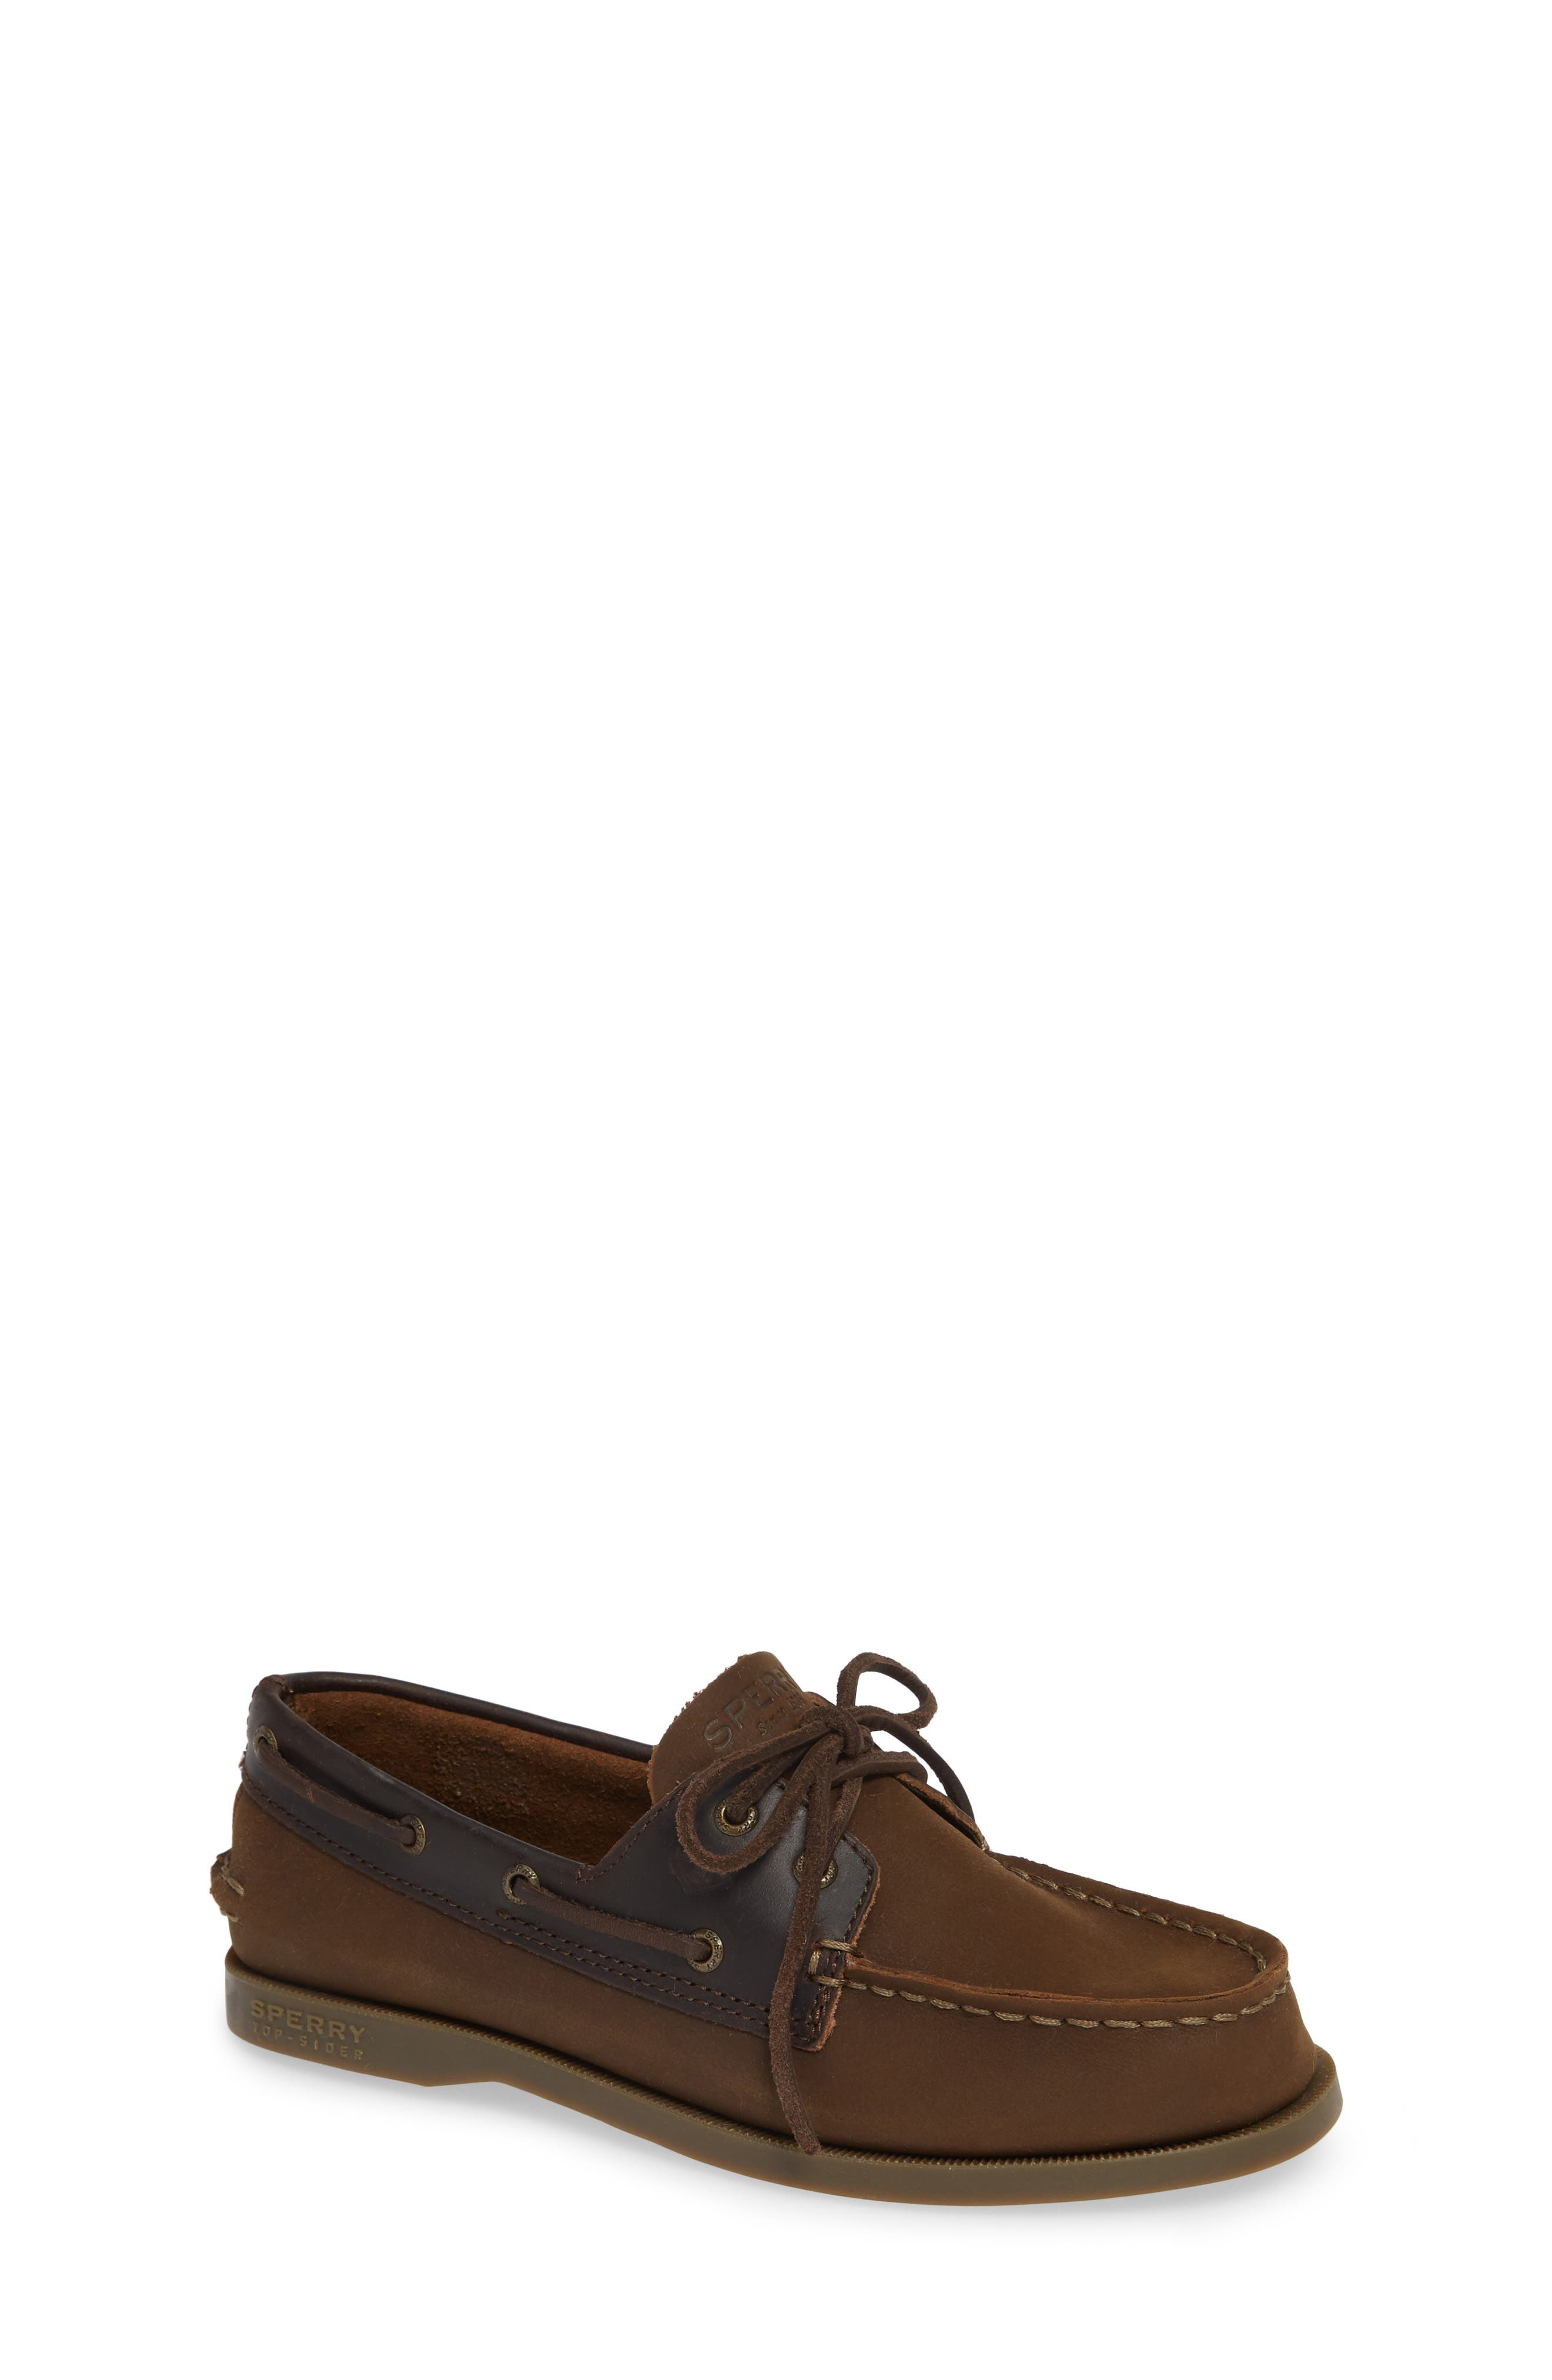 SPERRY KIDS 'Authentic Original' Boat Shoe, Main, color, BROWN BUCK LEATHER